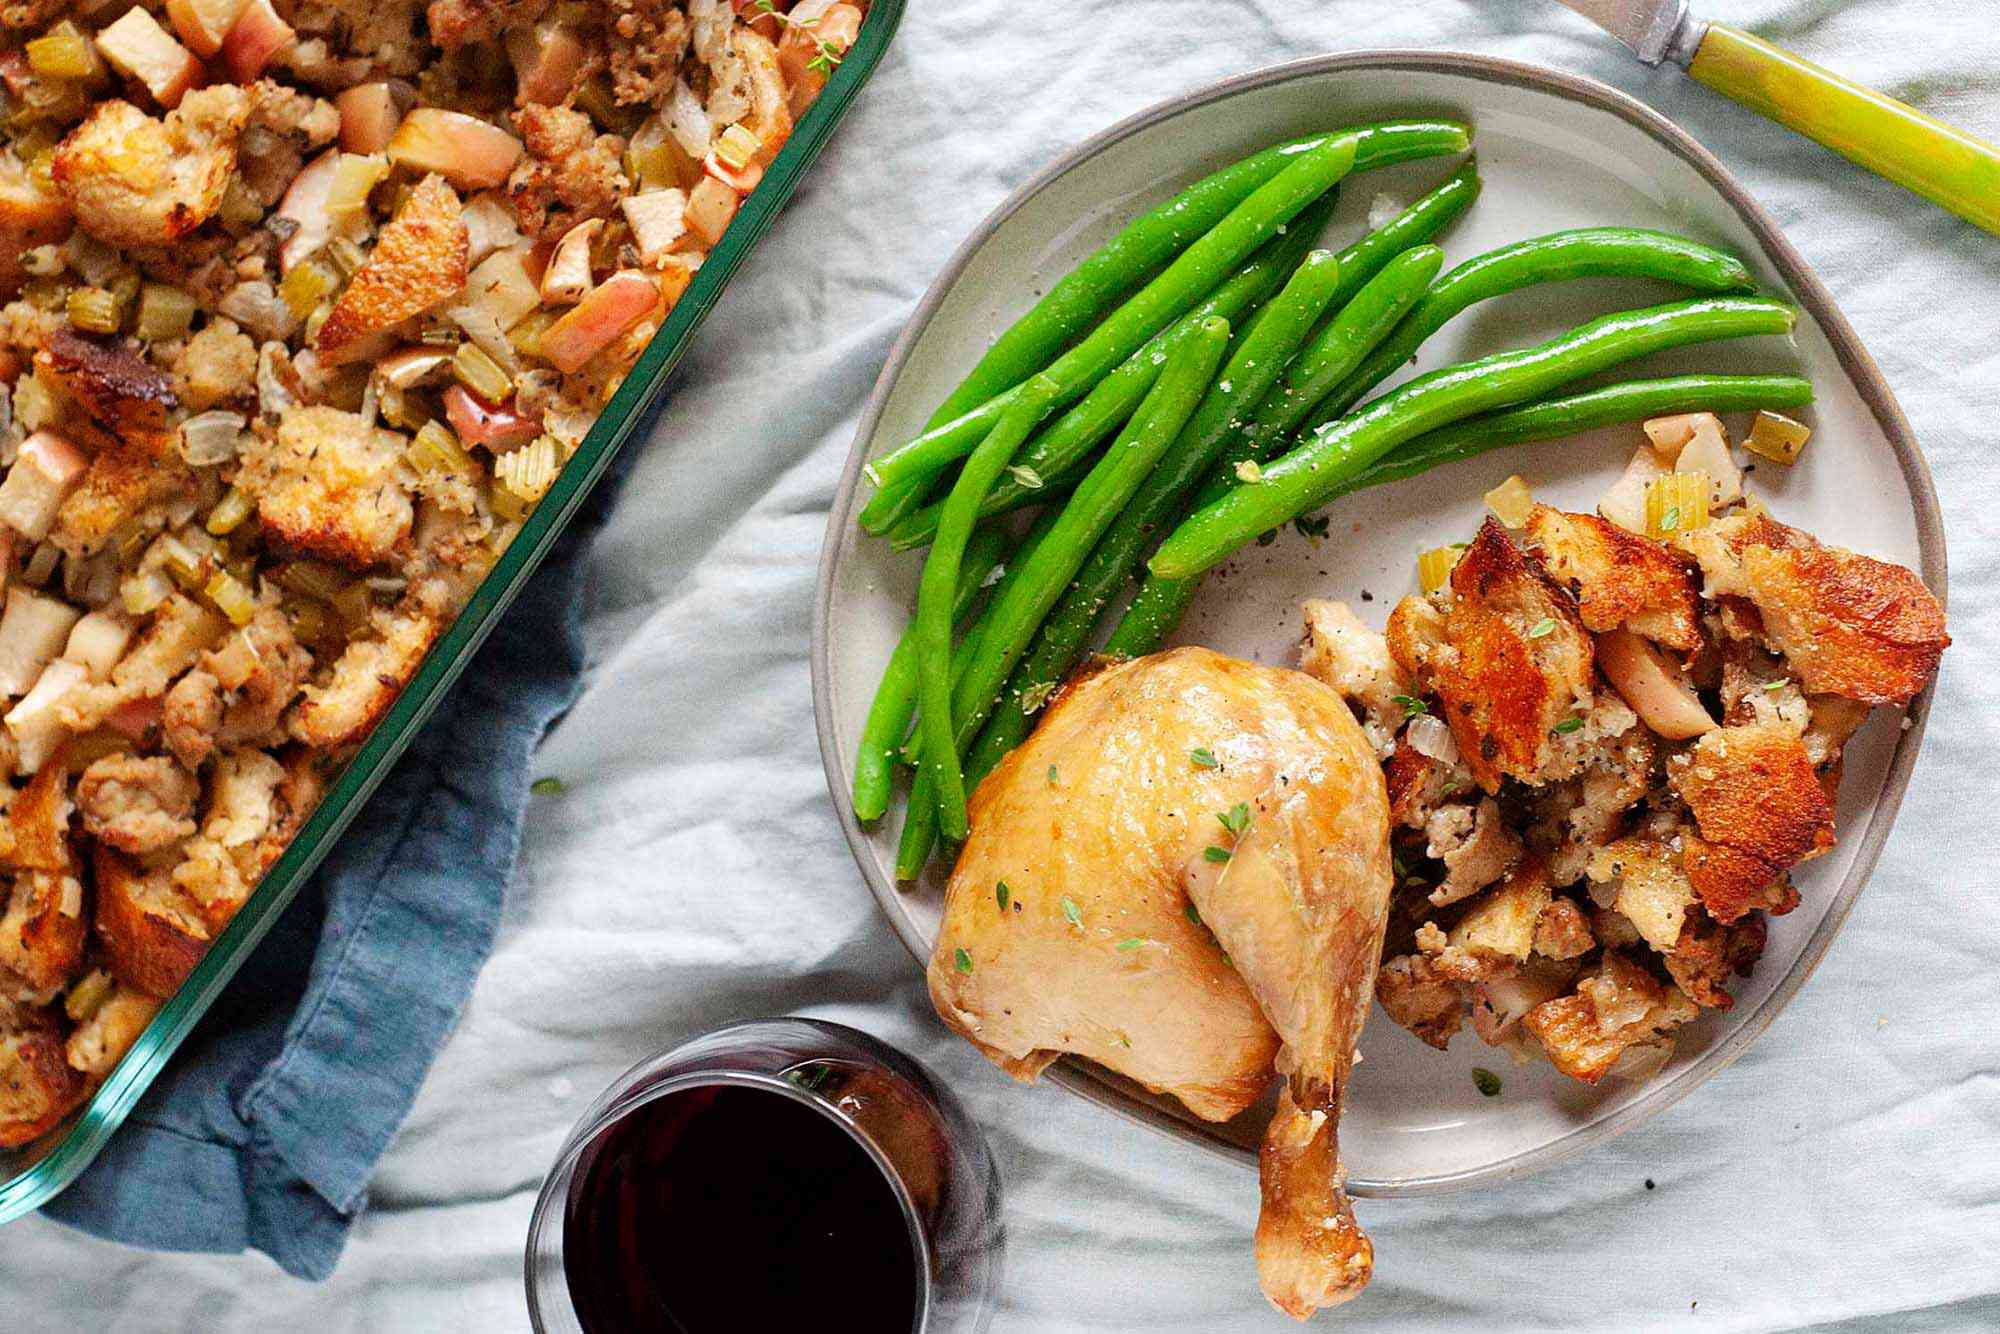 A baking dish with classic sage, sausage and apple stuffing next to plate of stuffing, chicken leg, and green beans. There is a glass of red wine nearby.